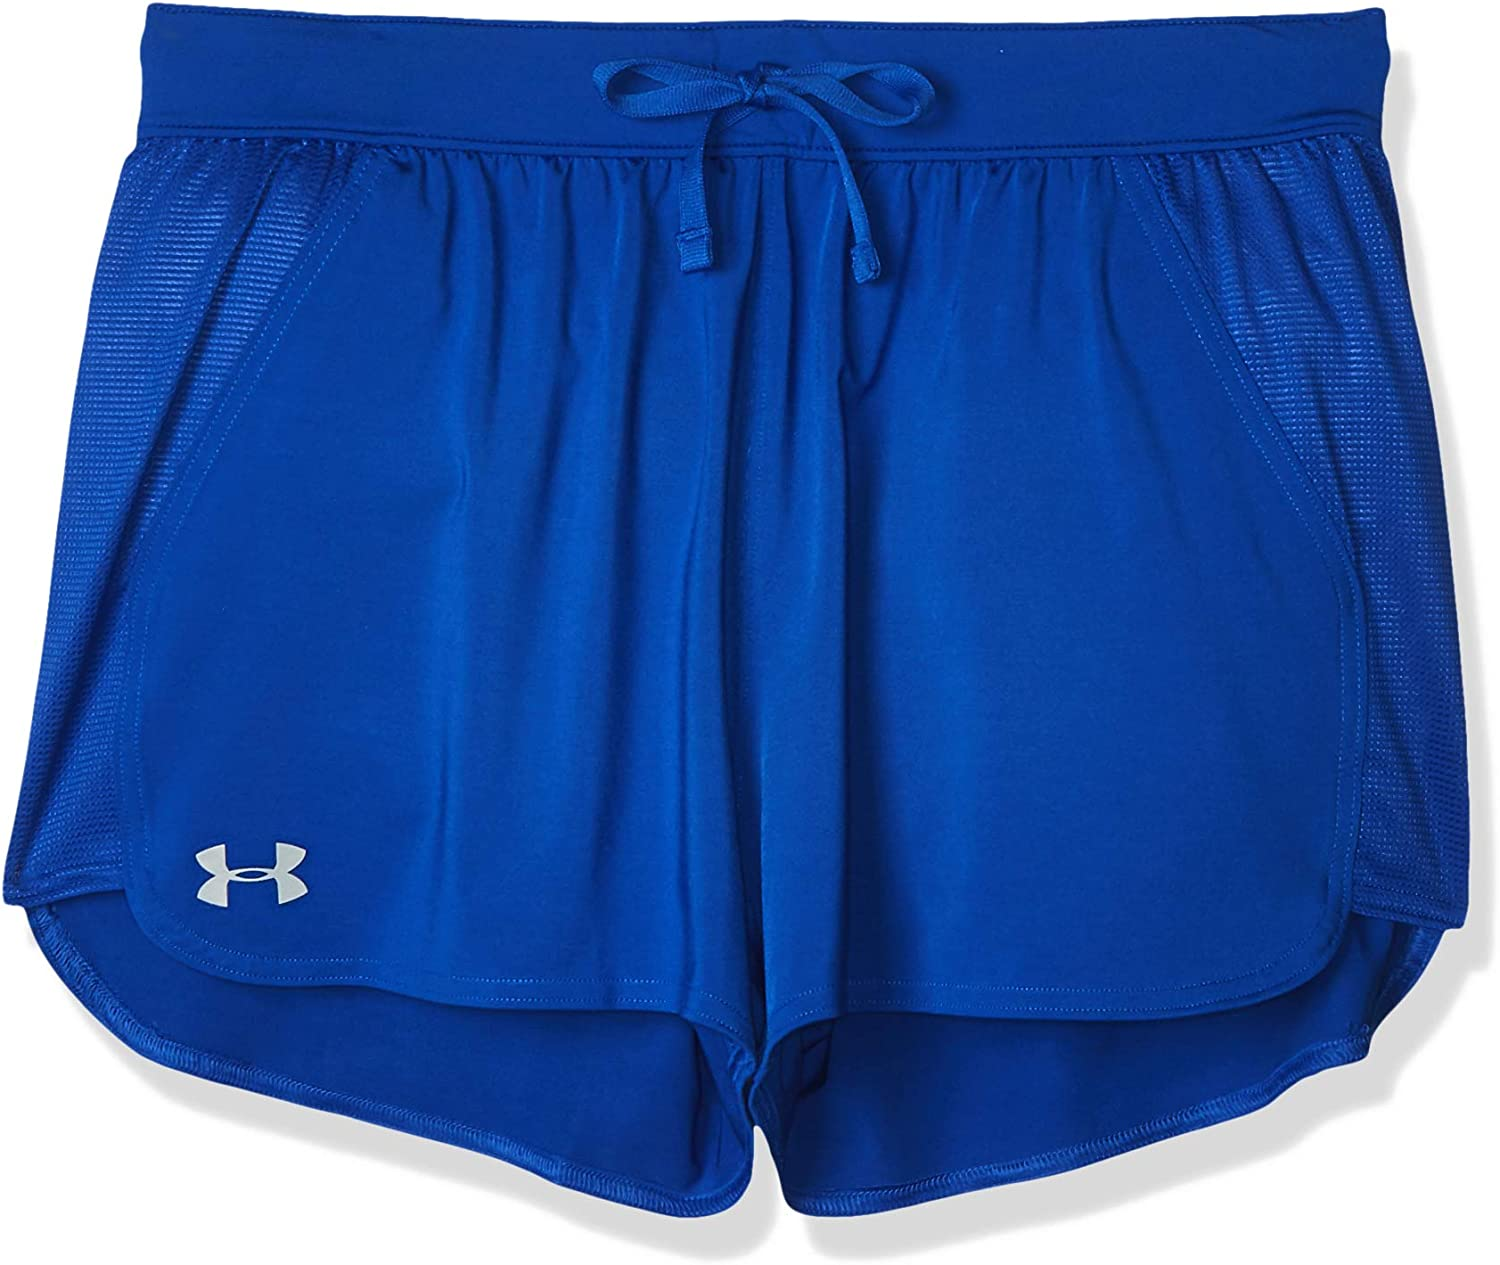 Under Armour Women's Game Time Short 5 2021 ☆ popular